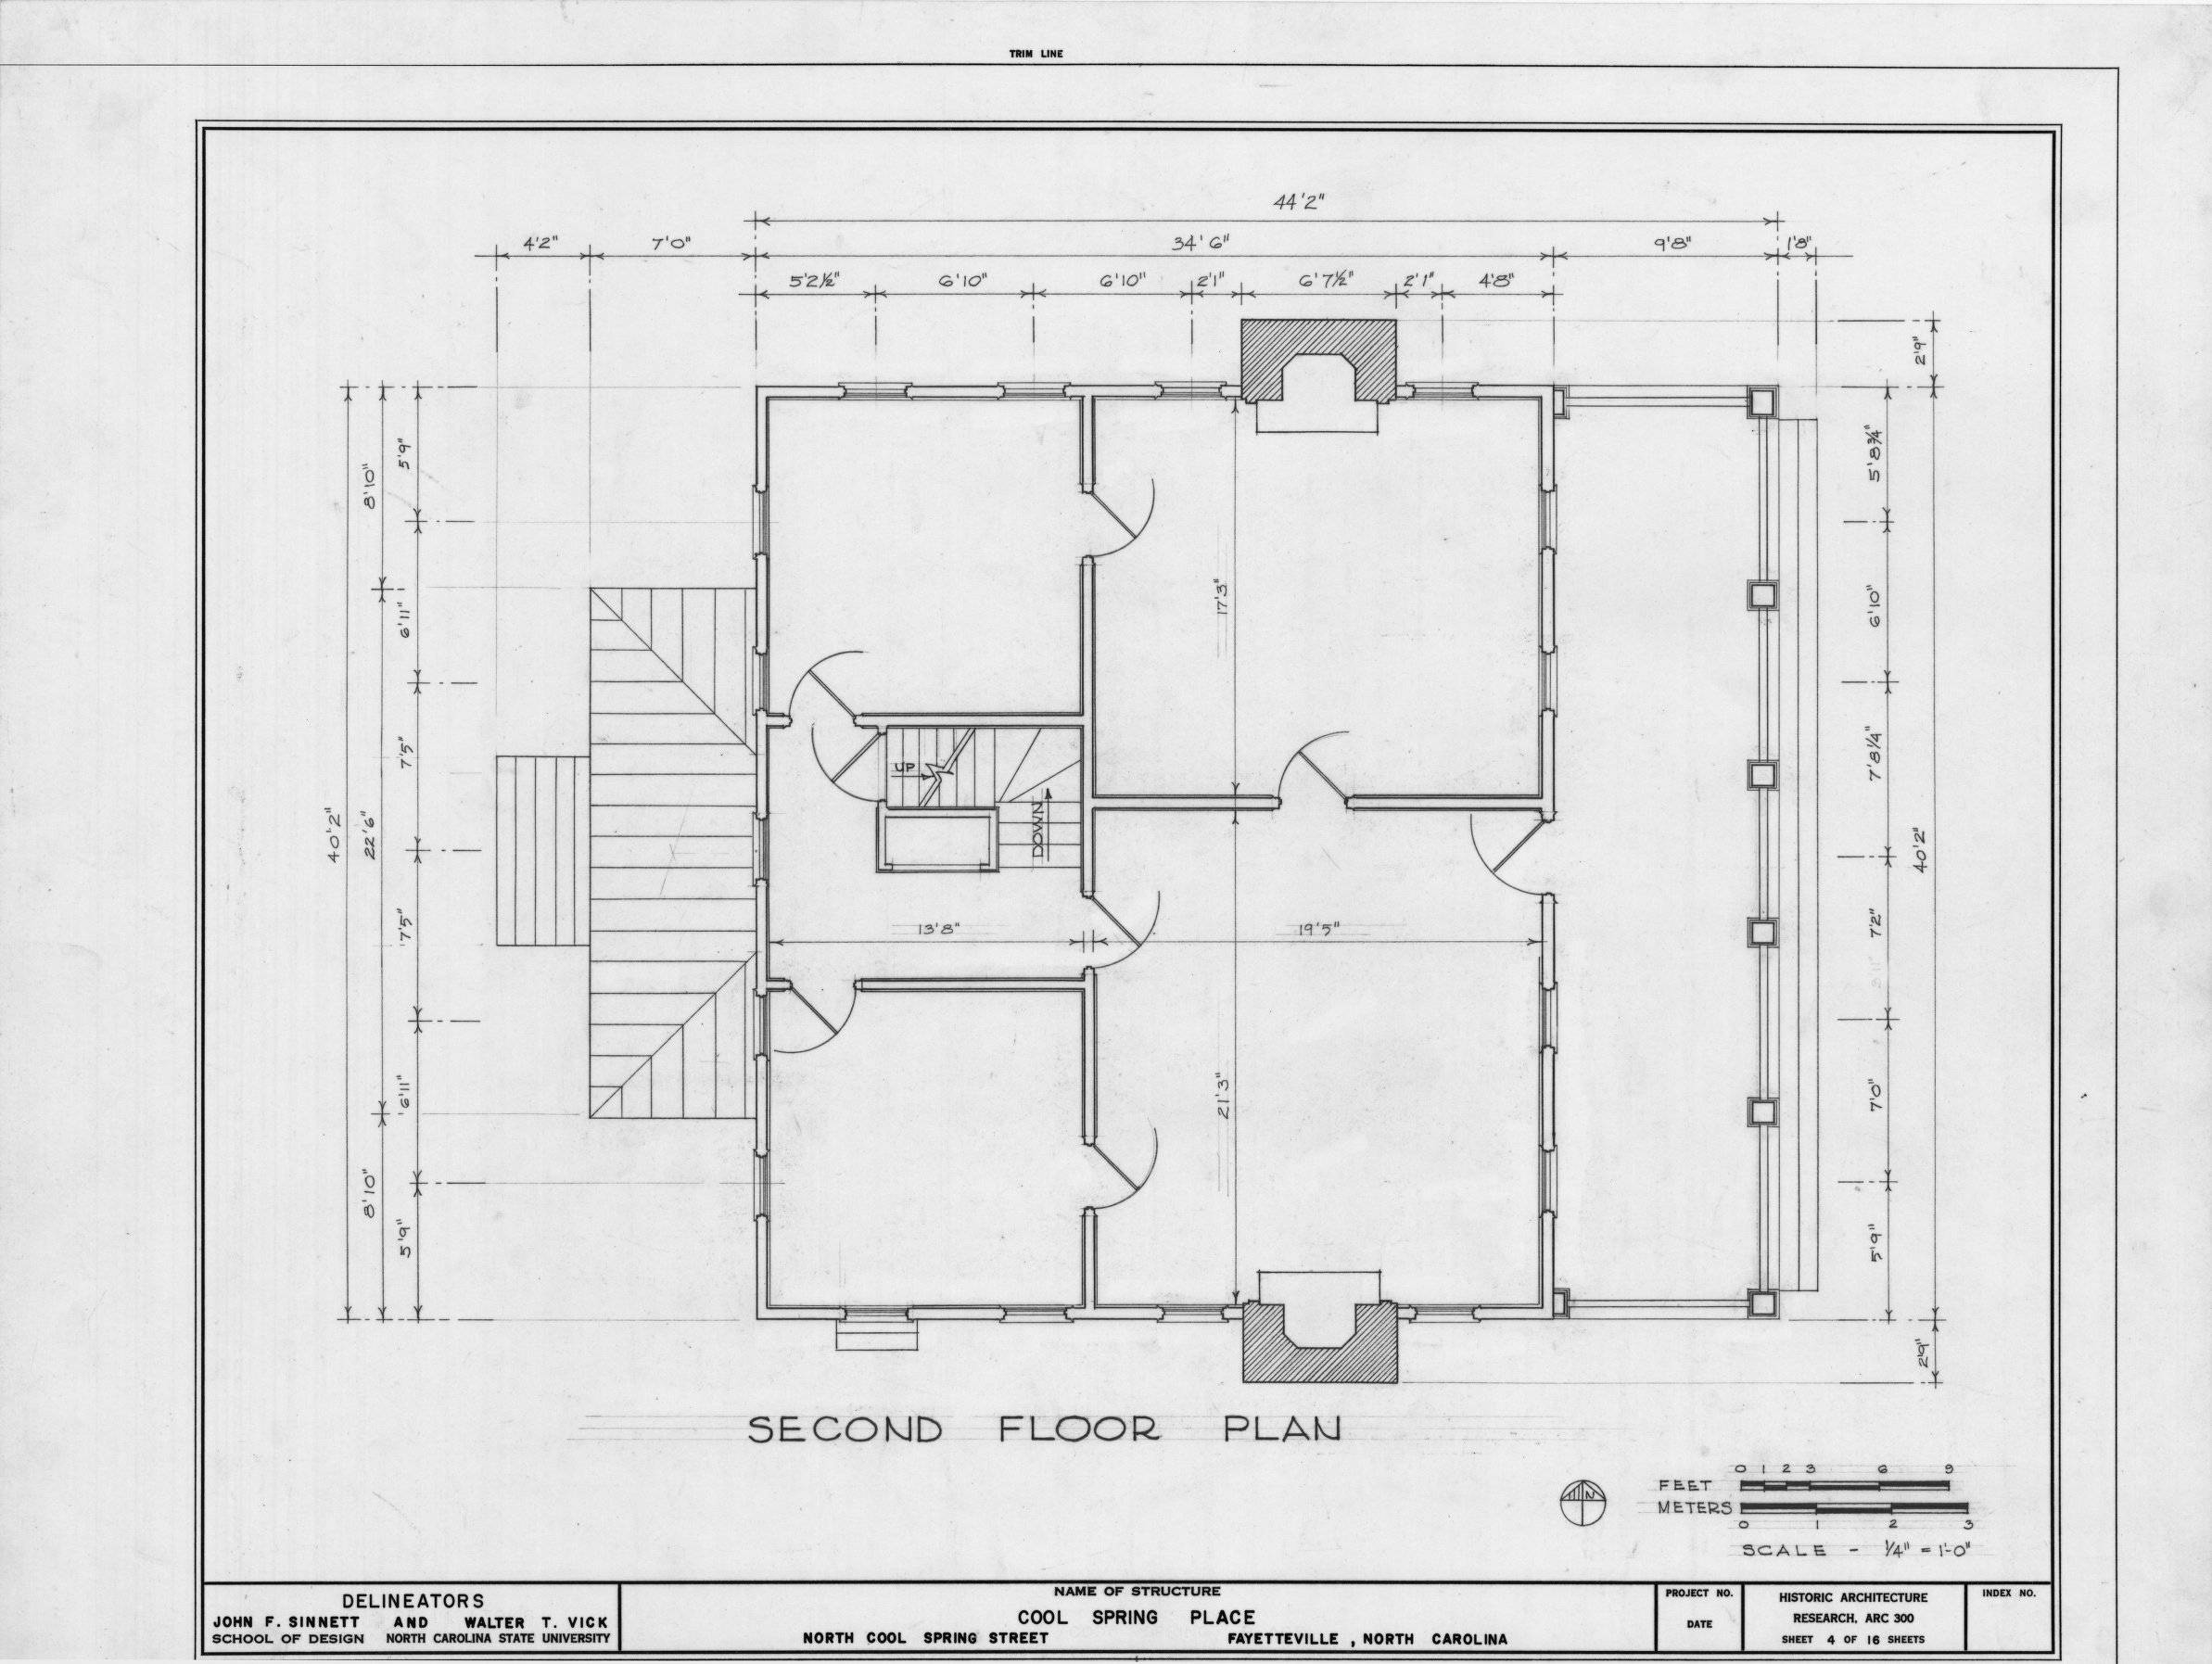 Floor Plan Cool Spring Place Fayetteville North Carolina